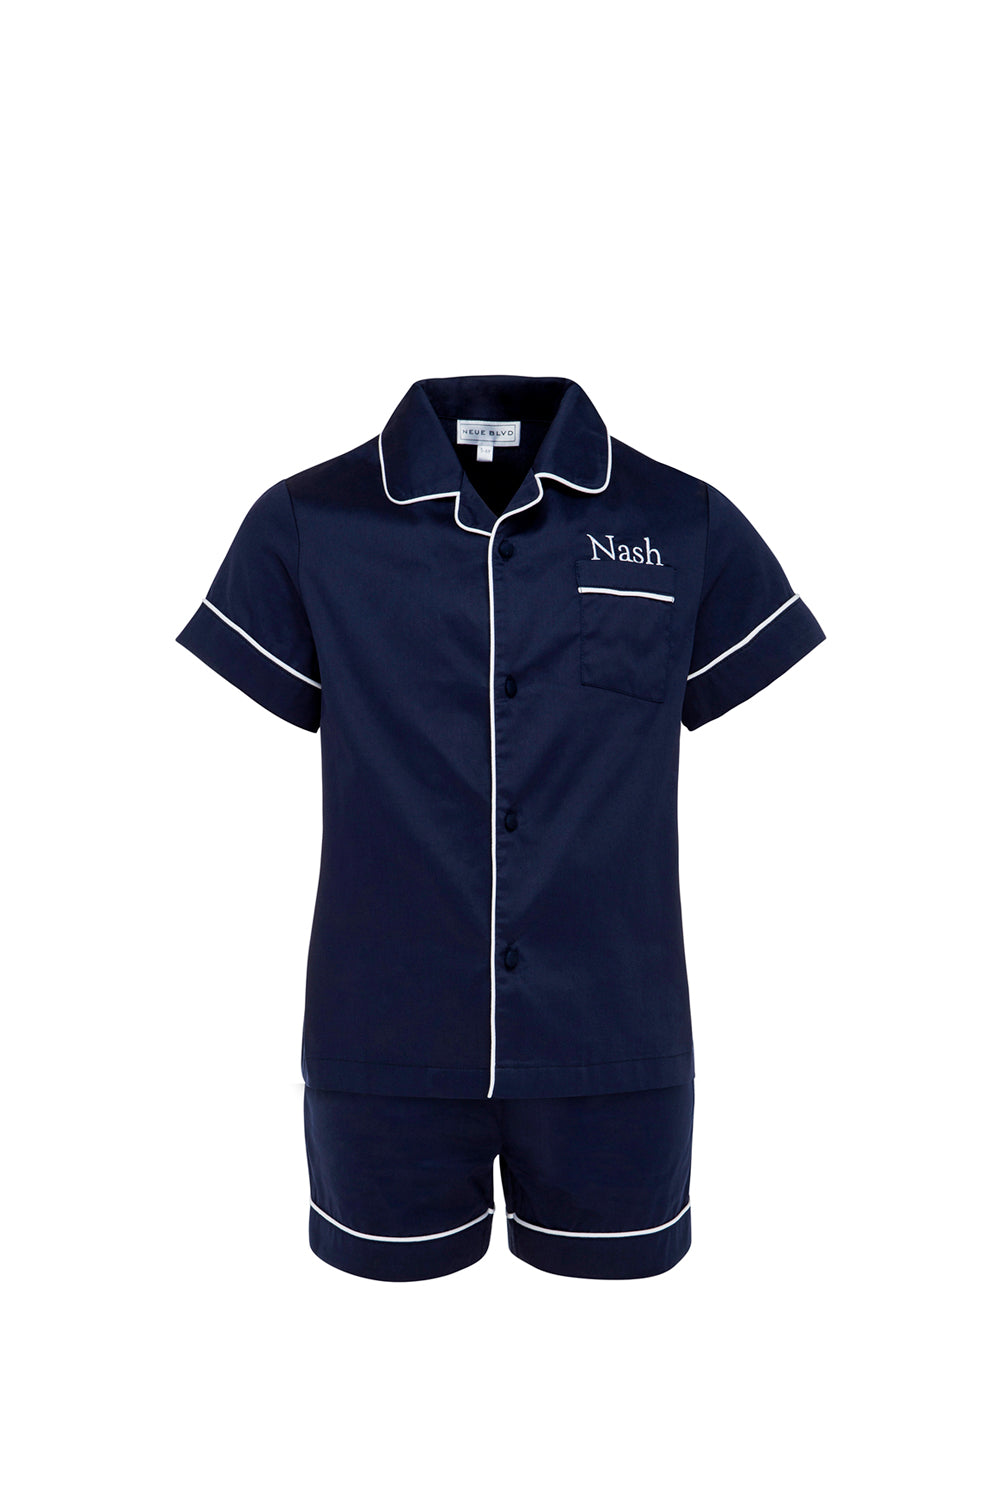 Amour Mini Navy Short Sleeve Set